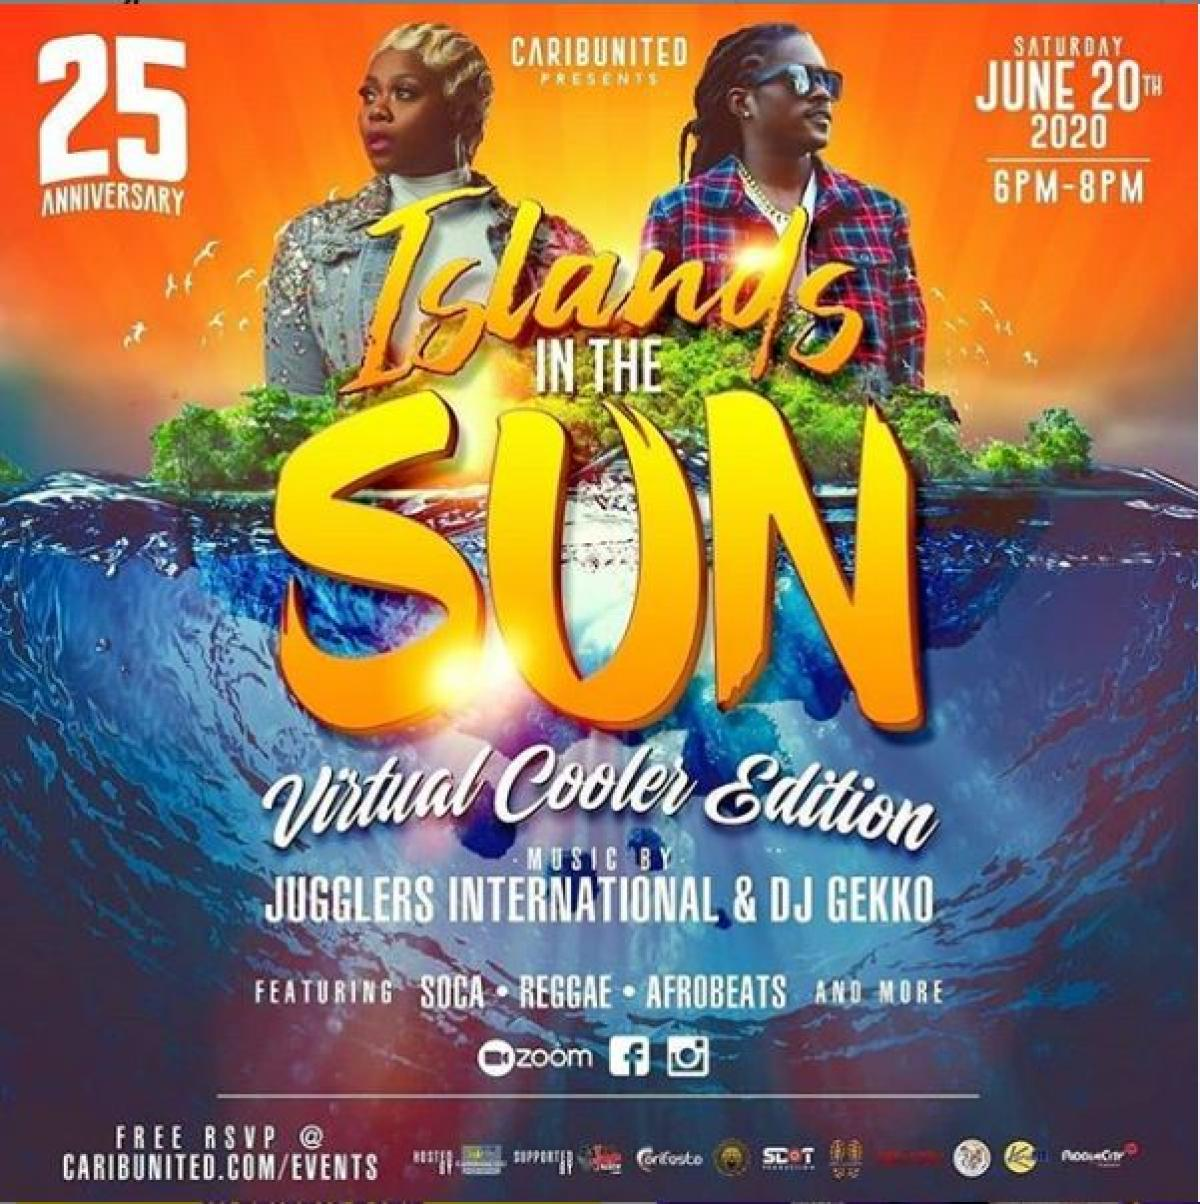 Island In The Sun Virtual Cooler Edtion  flyer or graphic.